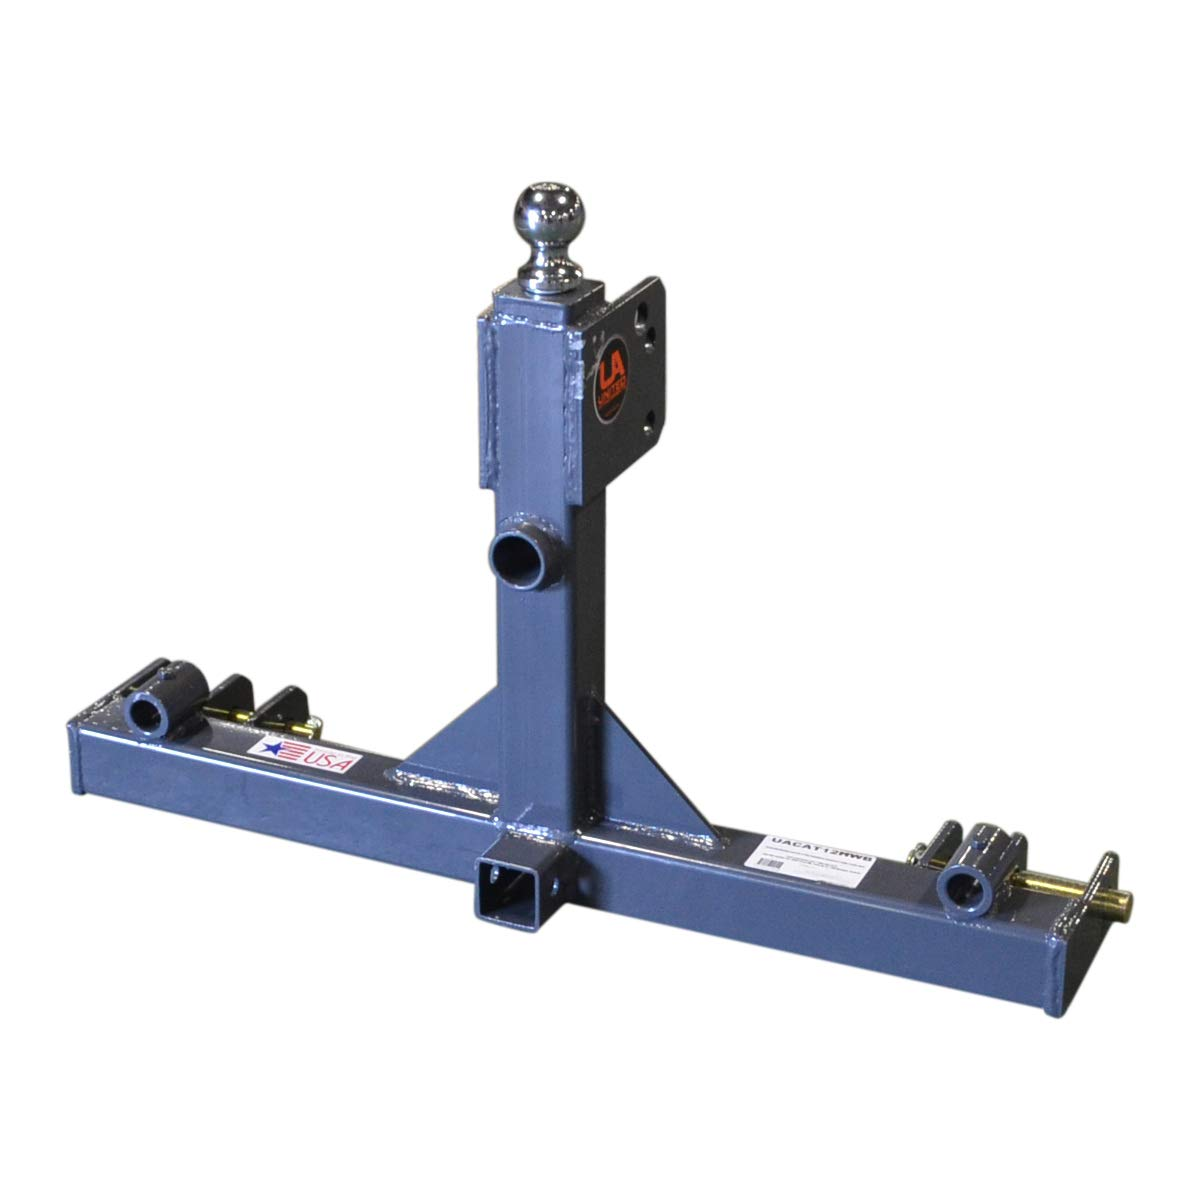 Titan Distributors Inc. 3 Point Gooseneck Tractor Trailer Hitch Receiver and Hay Attachment | Cat 1 & 2 by Titan Distributors Inc.